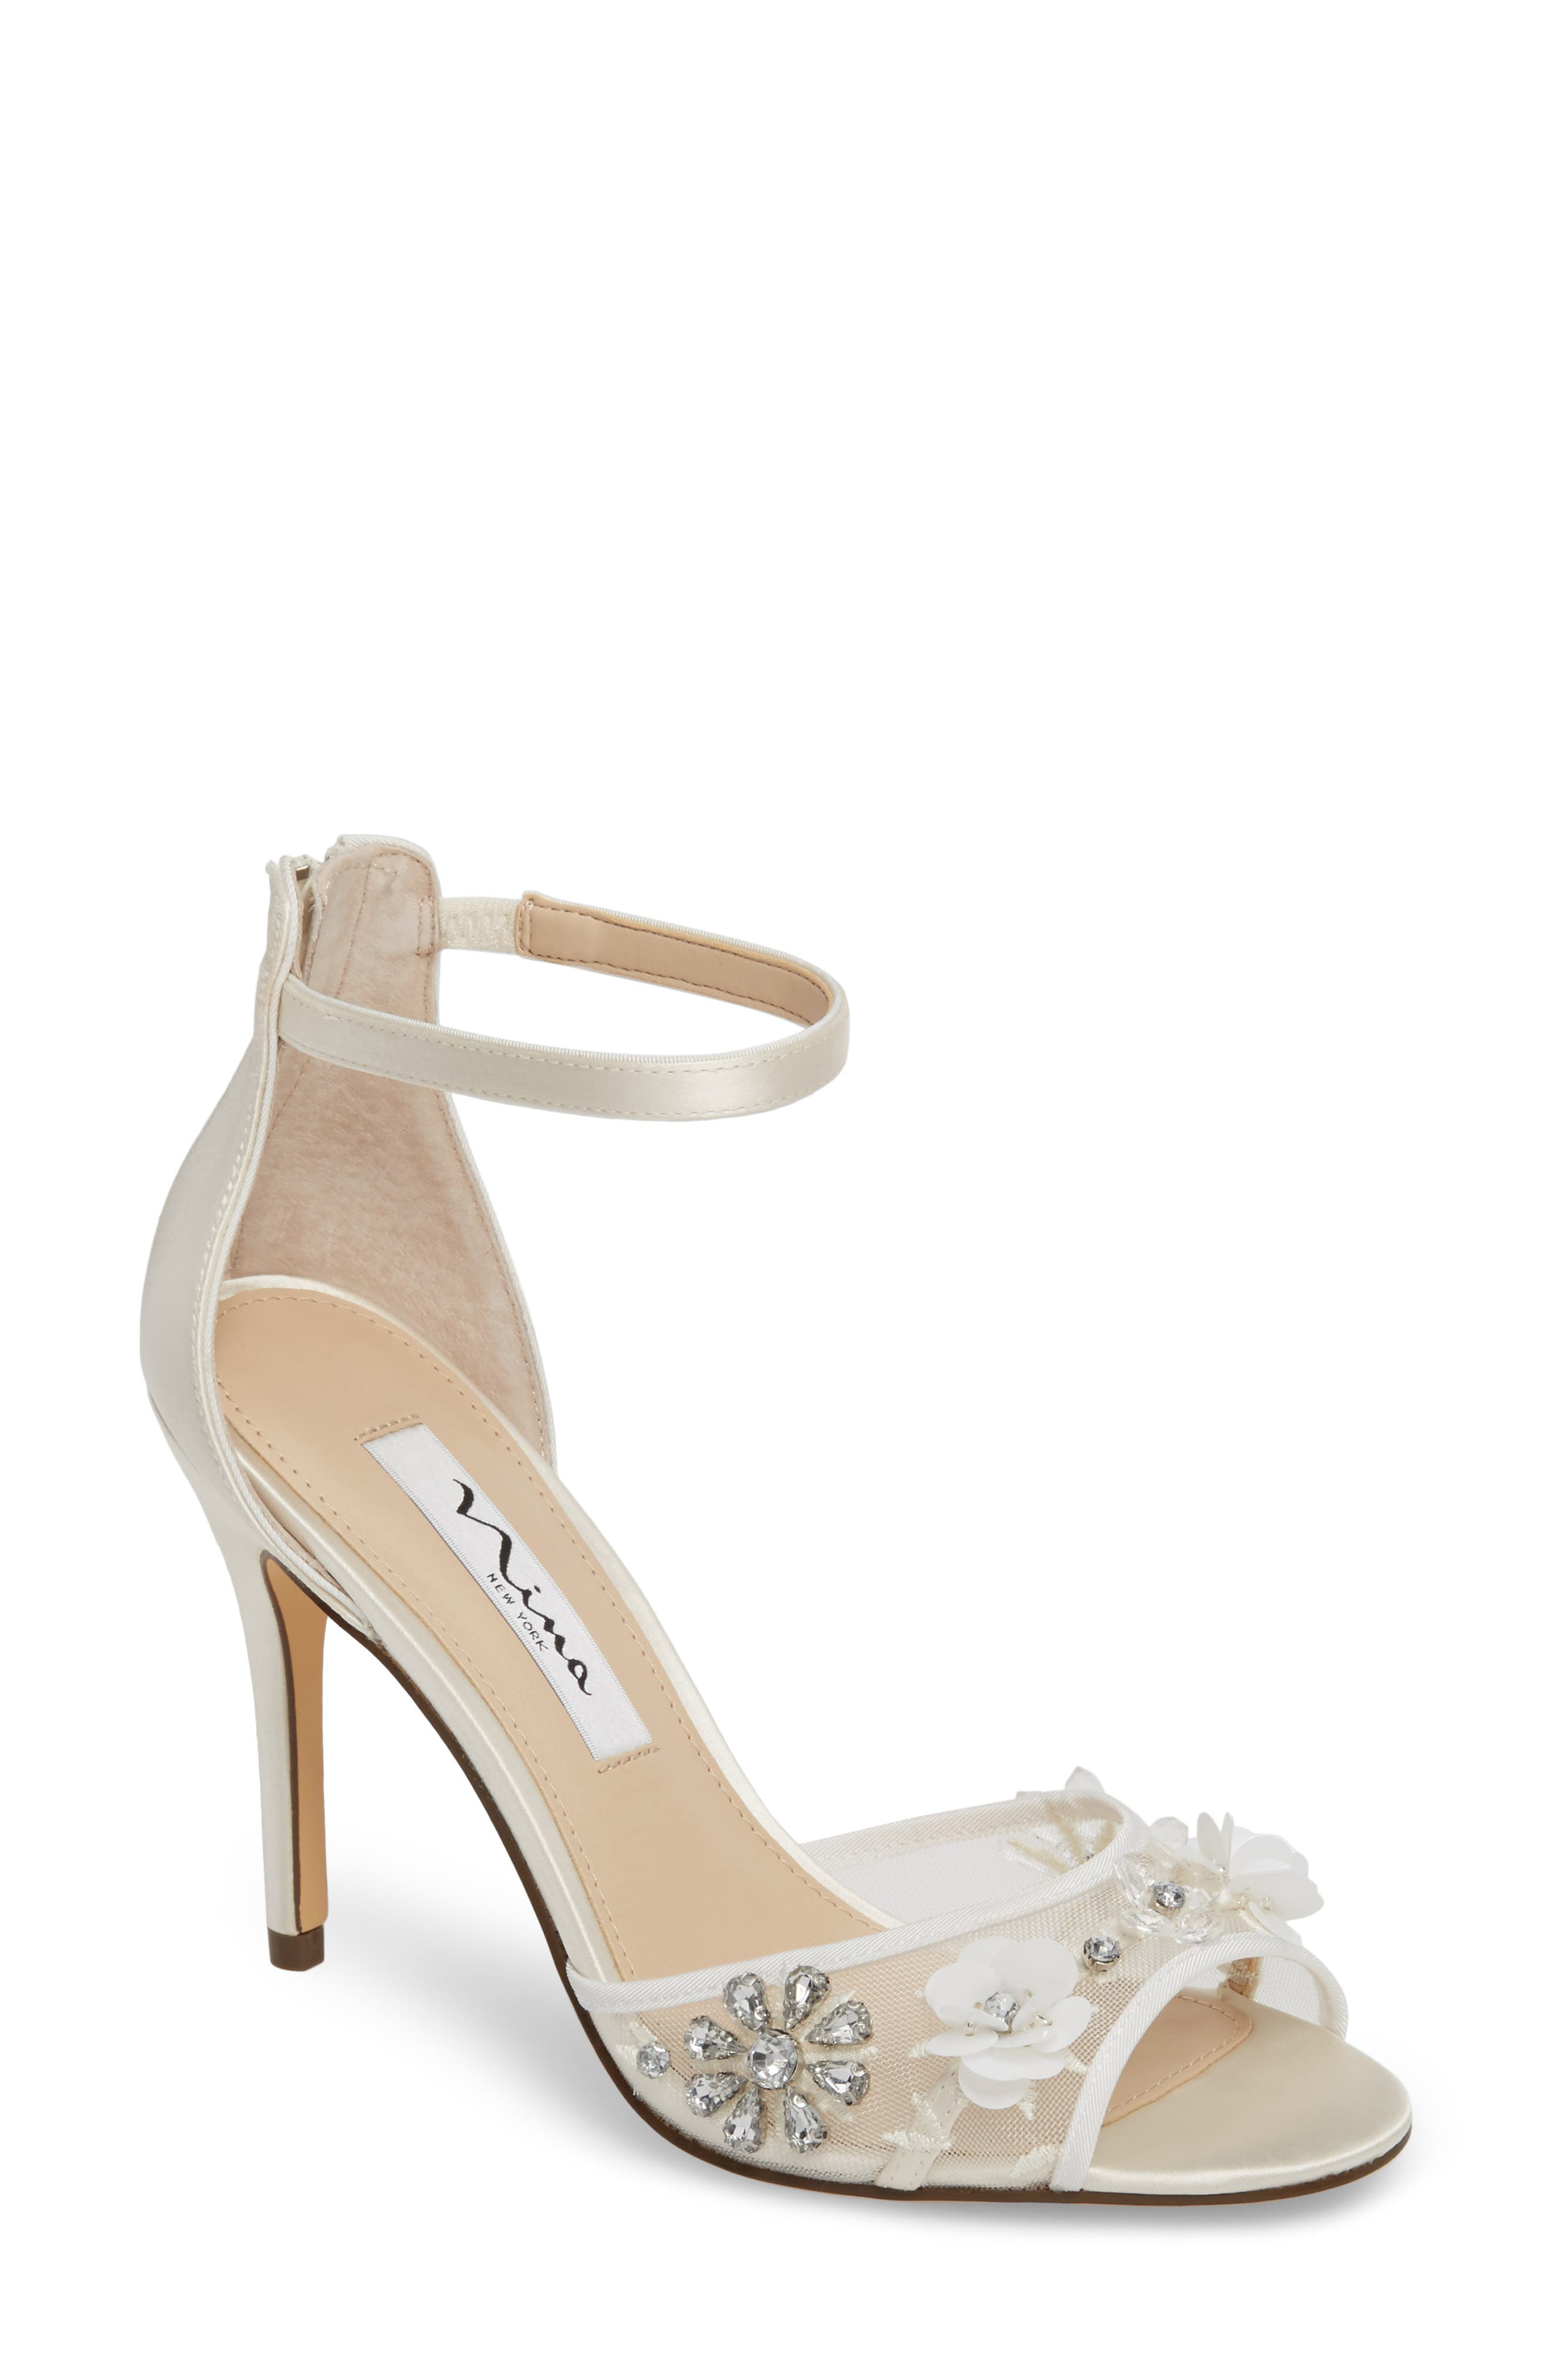 Clarity Ankle Strap Sandal,                         Main,                         color, IVORY SATIN